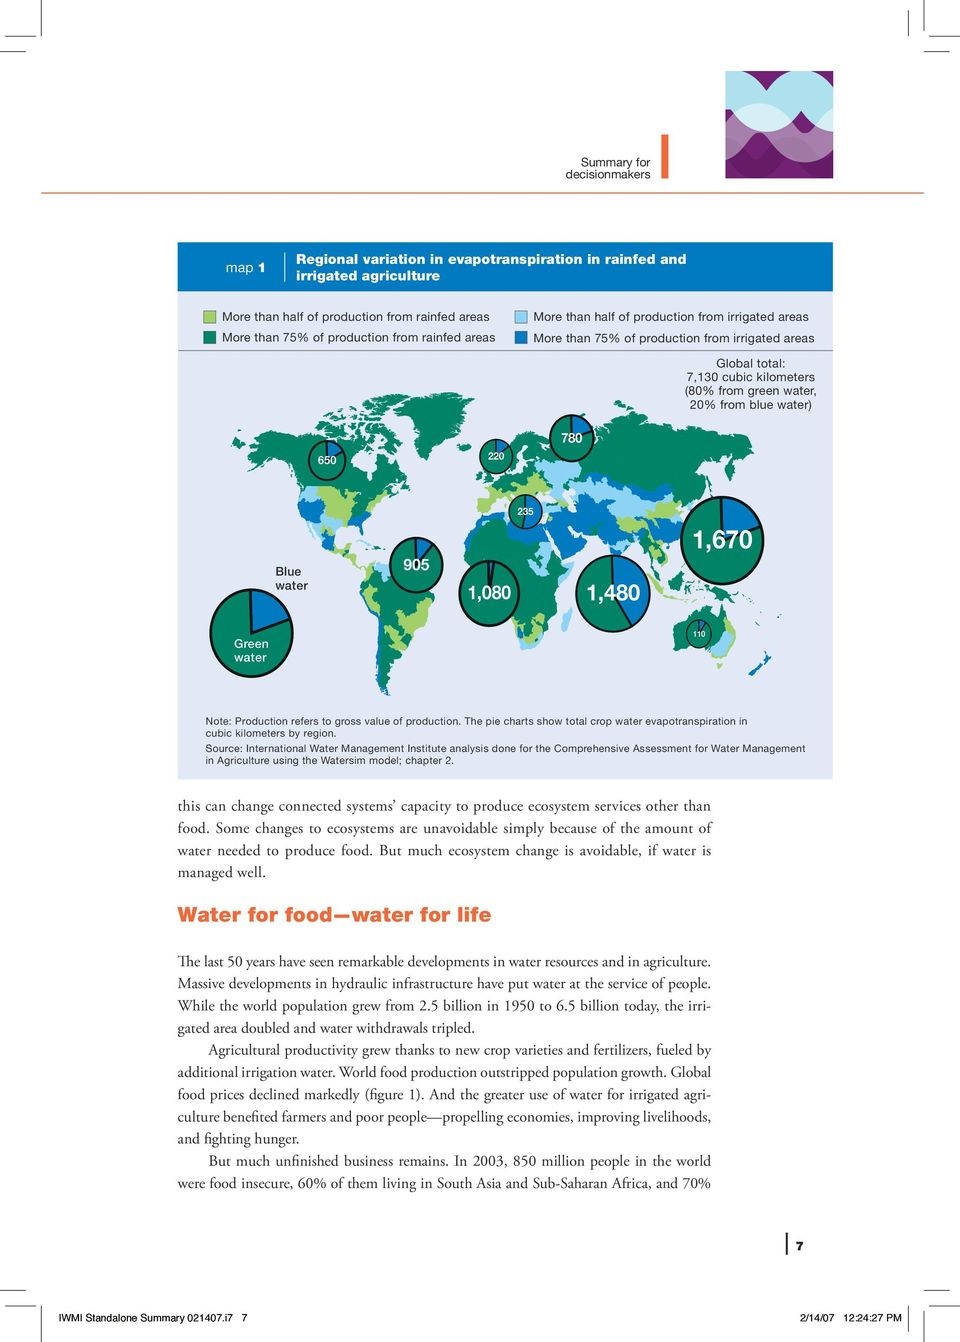 Blue water 905 235 1,080 1,480 1,670 Green water 110 Note: Production refers to gross value of production. The pie charts show total crop water evapotranspiration in cubic kilometers by region.